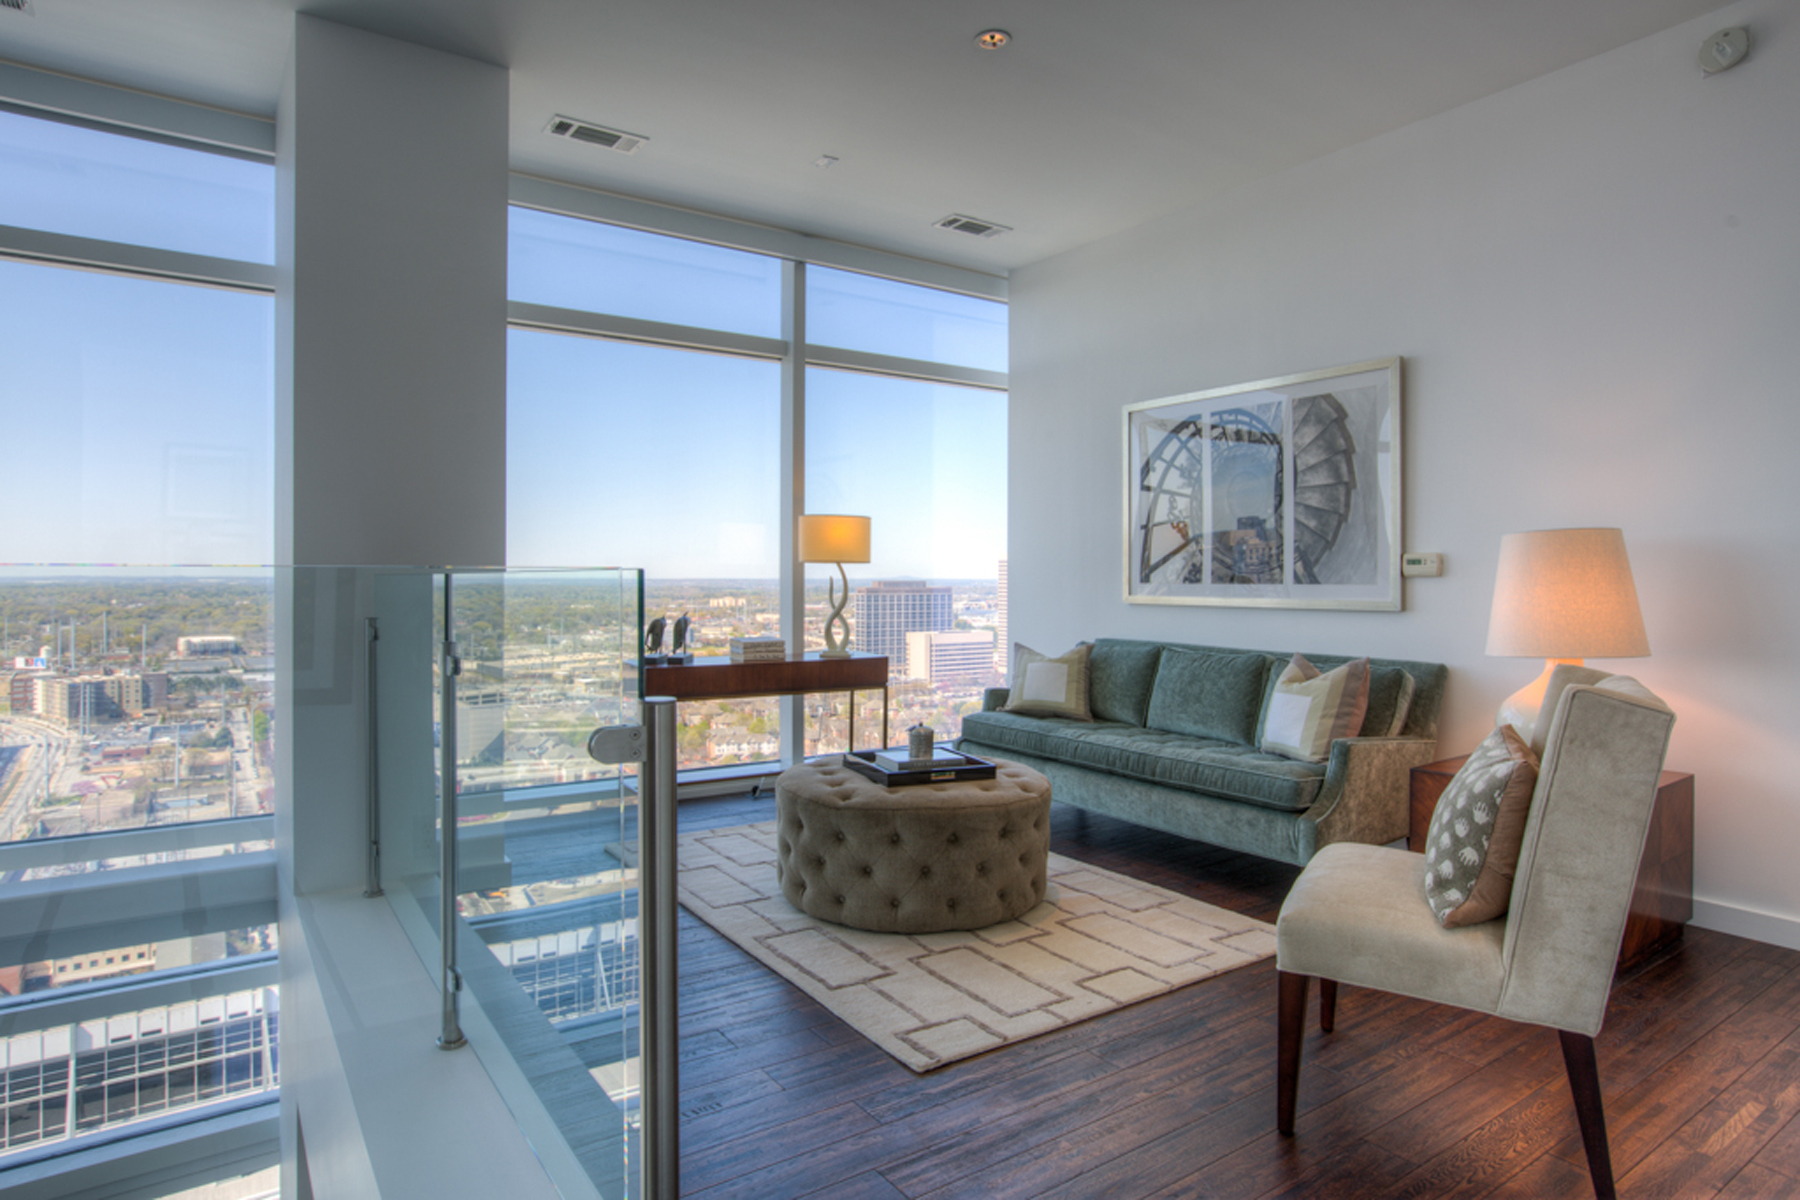 Additional photo for property listing at Spectacular Two Level Atlanta Penthouse With Luxury Hotel Amenities 45 Ivan Allen Jr Boulevard PH#2703 Atlanta, Georgia 30308 United States